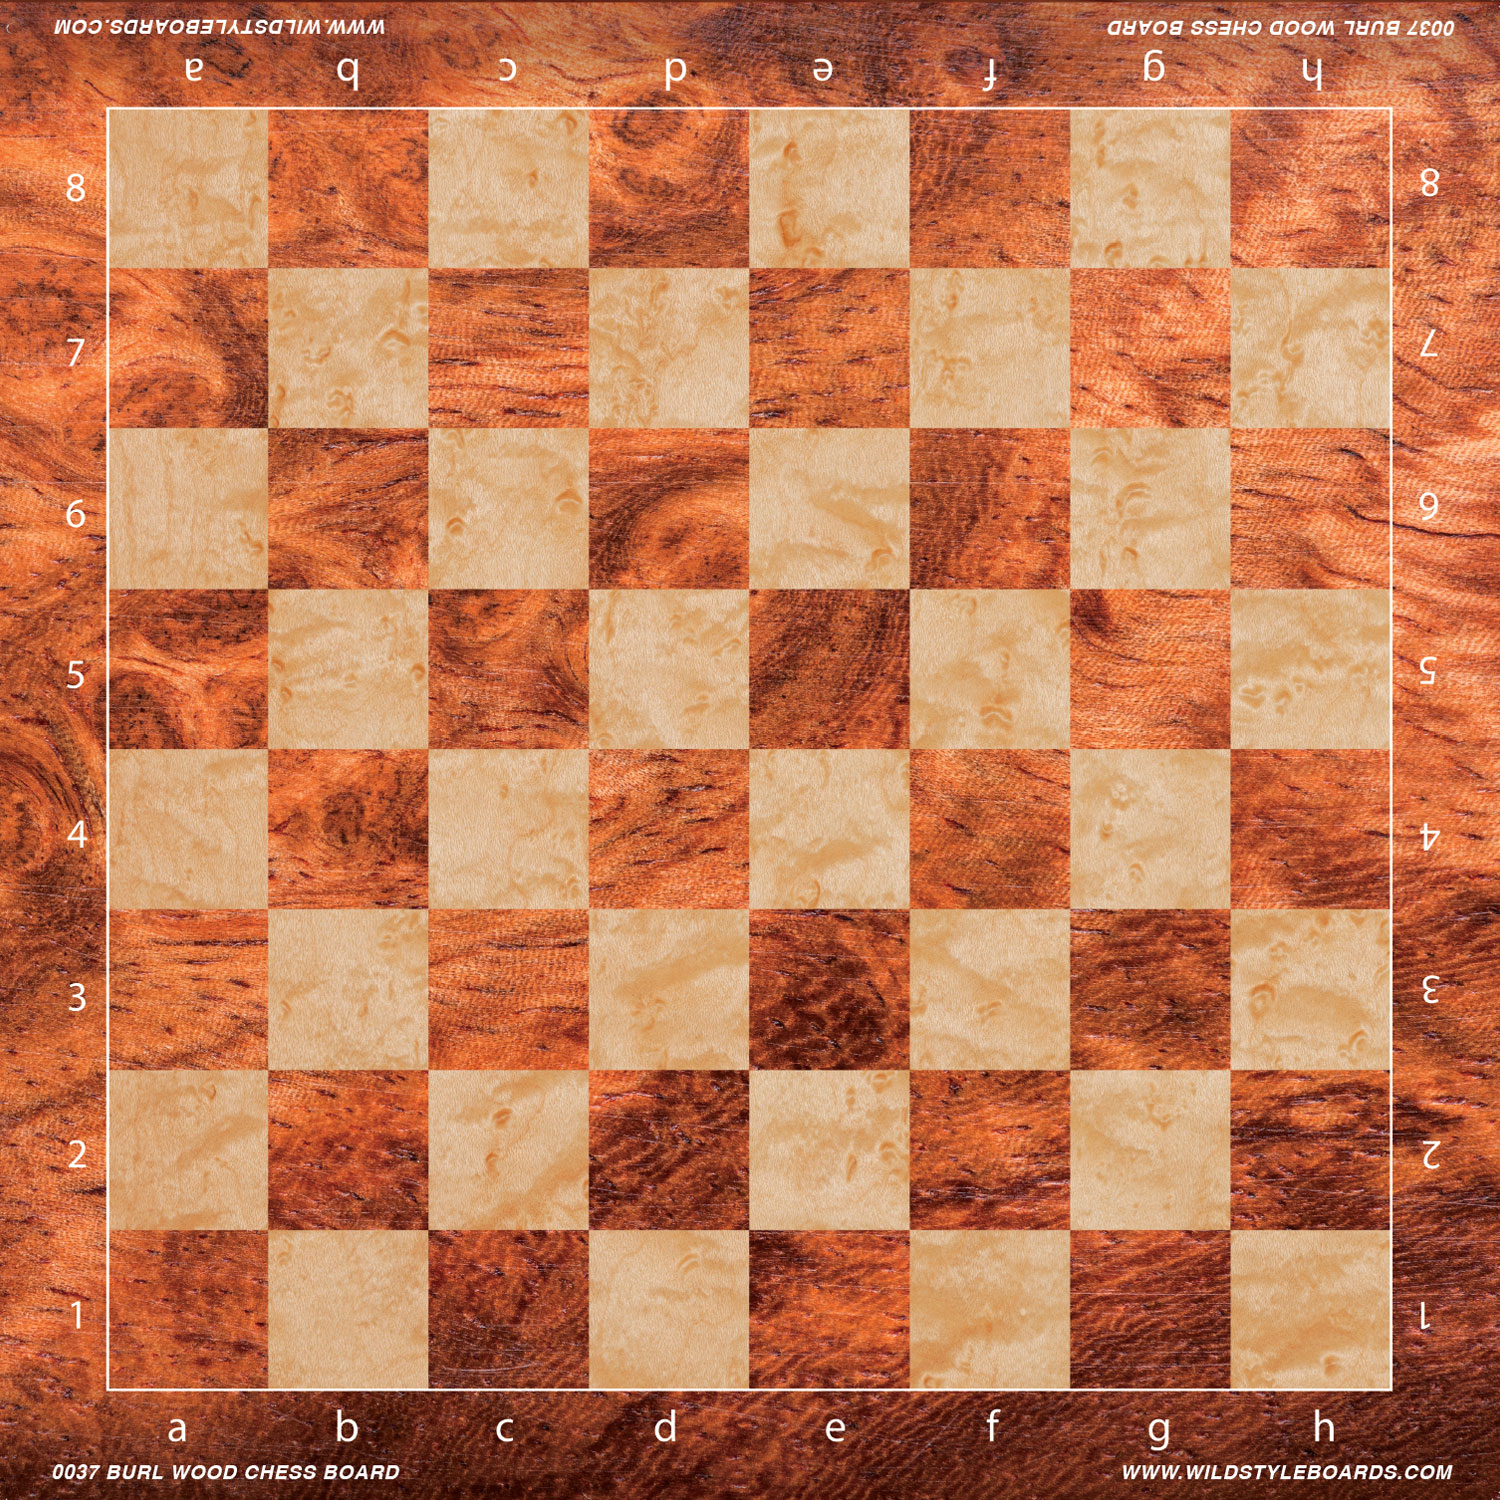 USCF Sales Burl Wood Chess Board - Full Color Vinyl Chess Board | eBay